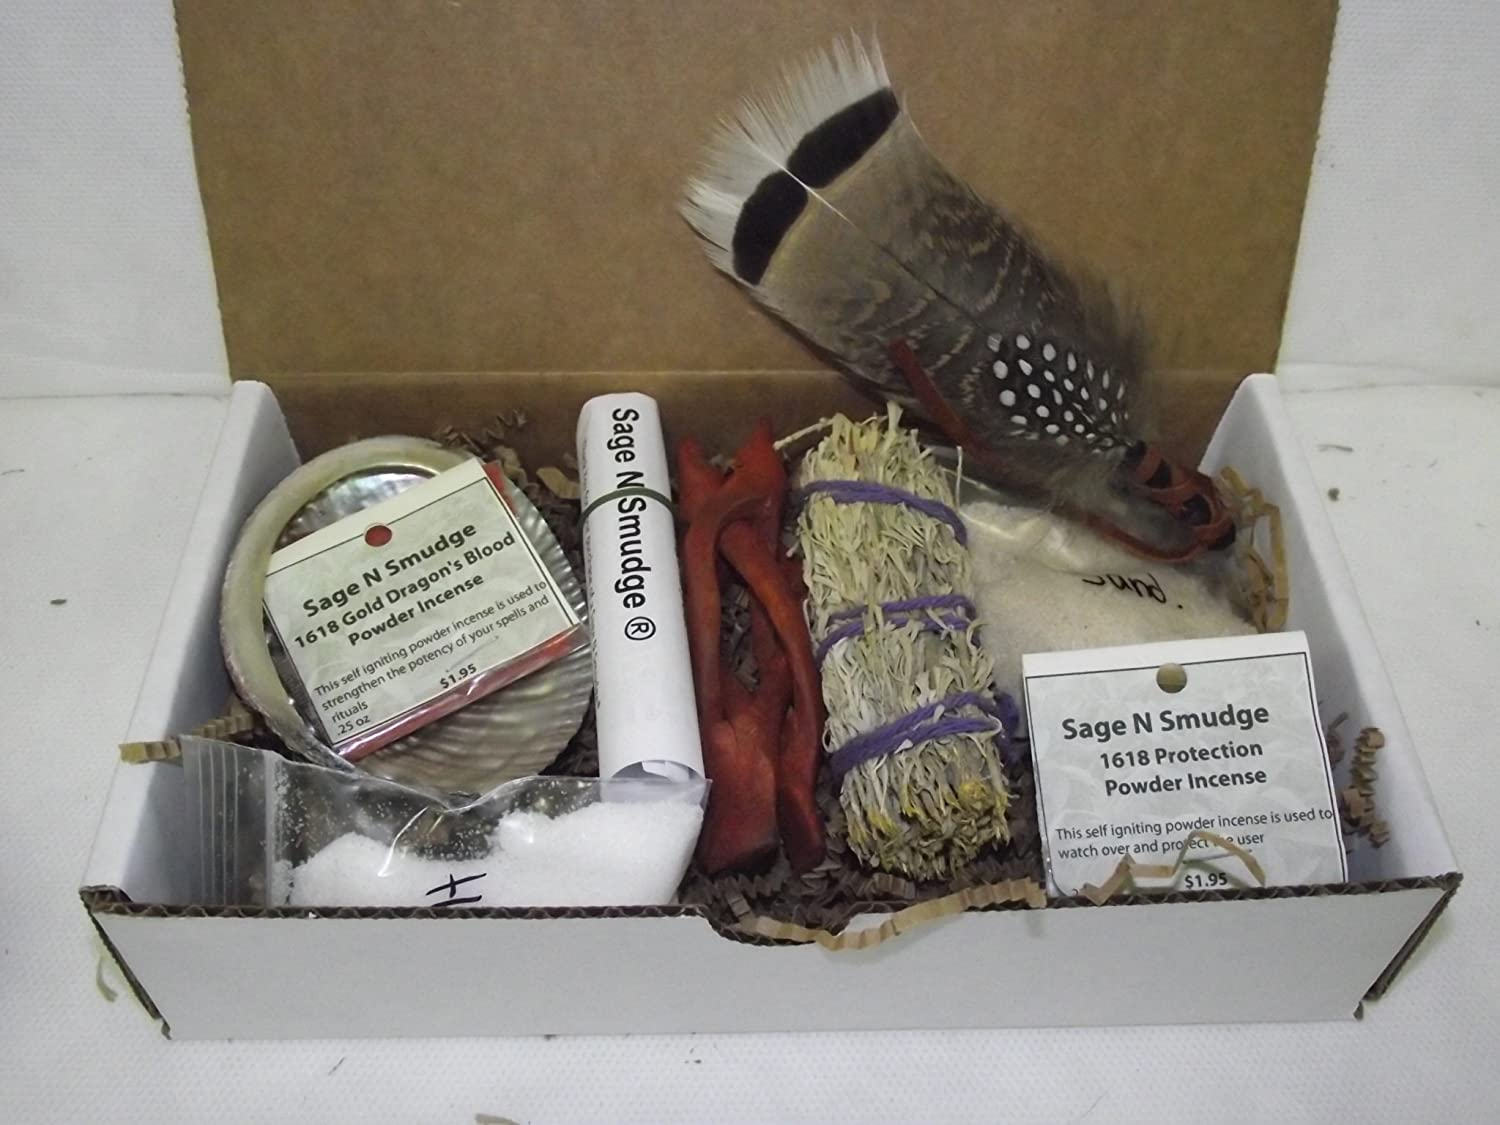 Sage Smudge Kit Travel Kit Gift Set with Gift Card Abalone Shell Stand Sage Wild Turkey Feather Salt Protection Incense Dragonsblood Incese Censor Sand and Directions Sage N Smudge ®